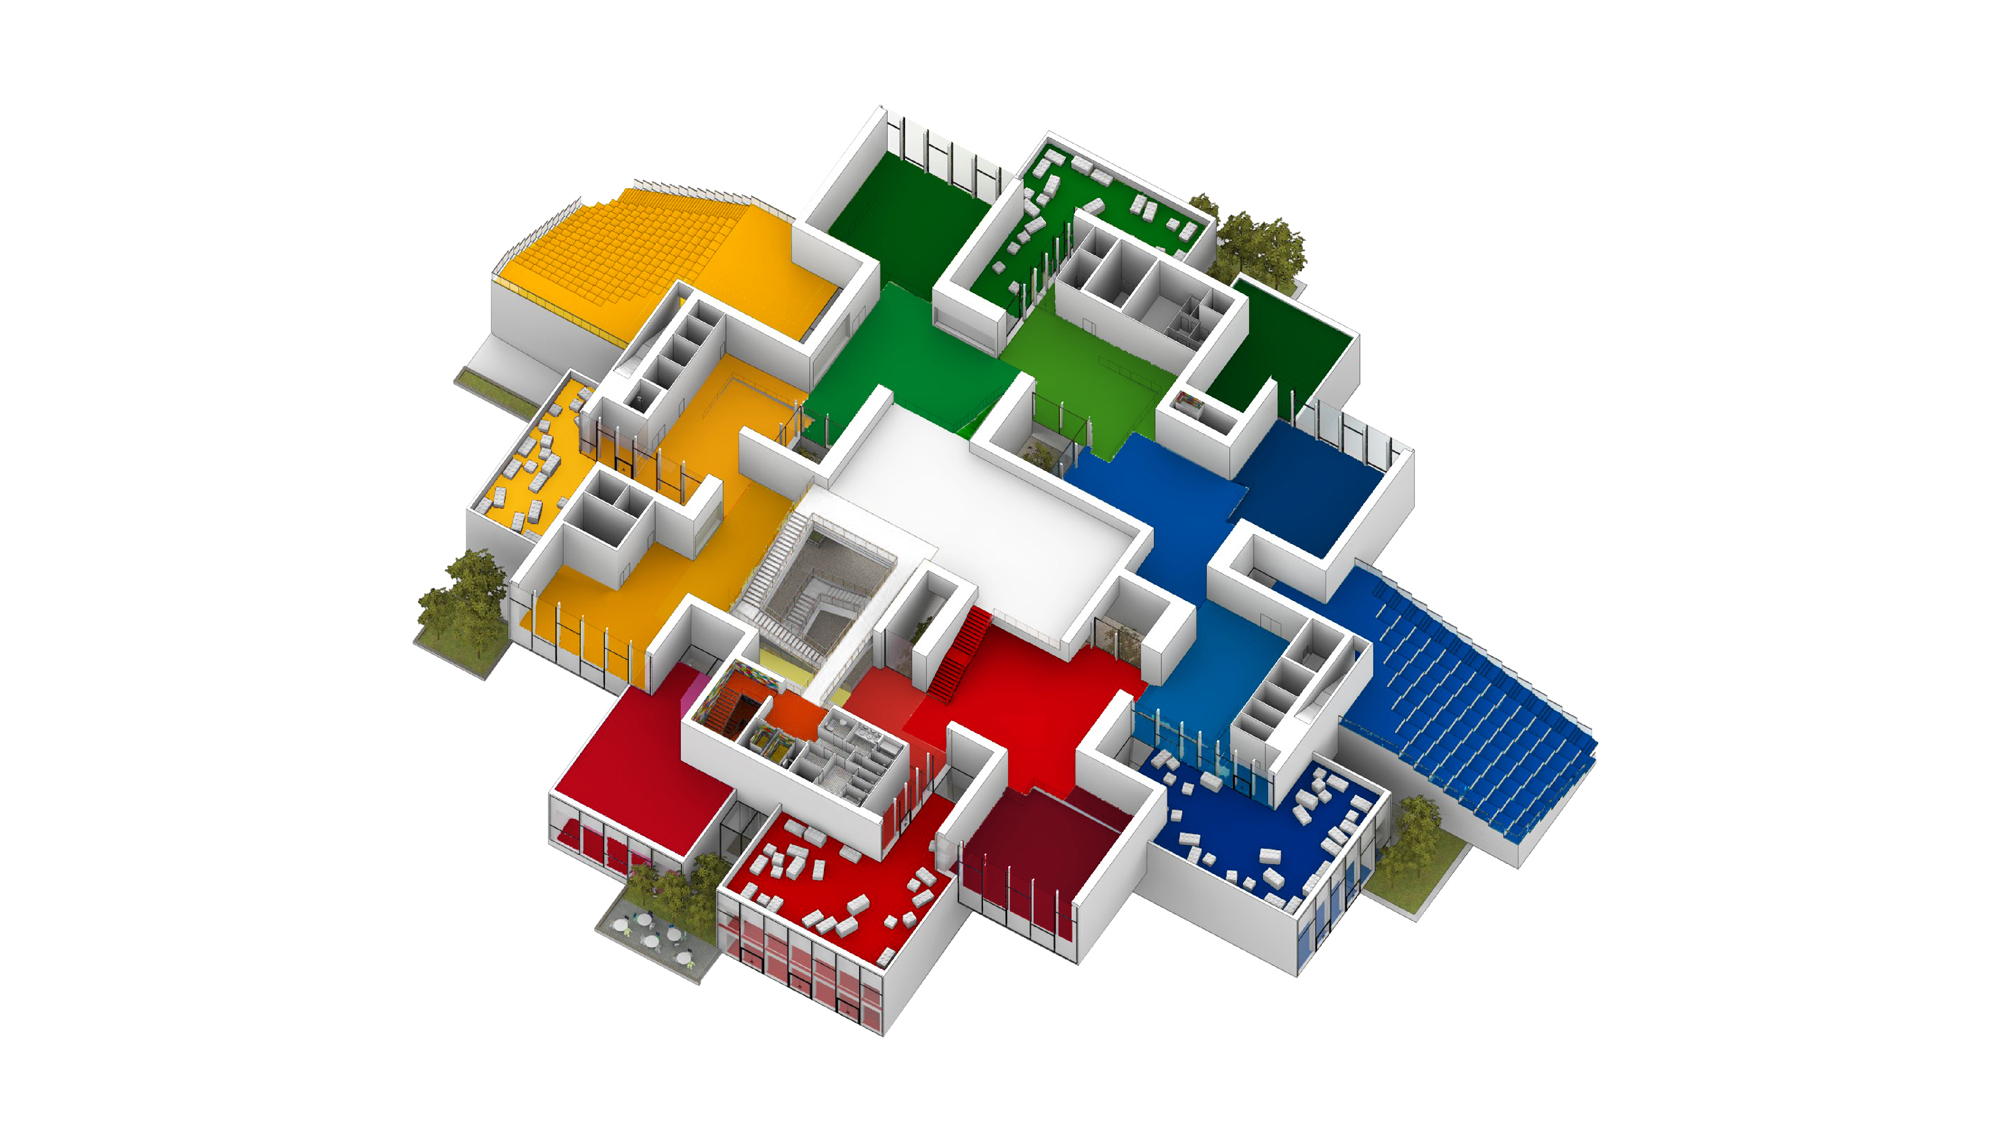 Galleries level of the LEGO house by BIG - Bjarke Ingles Group